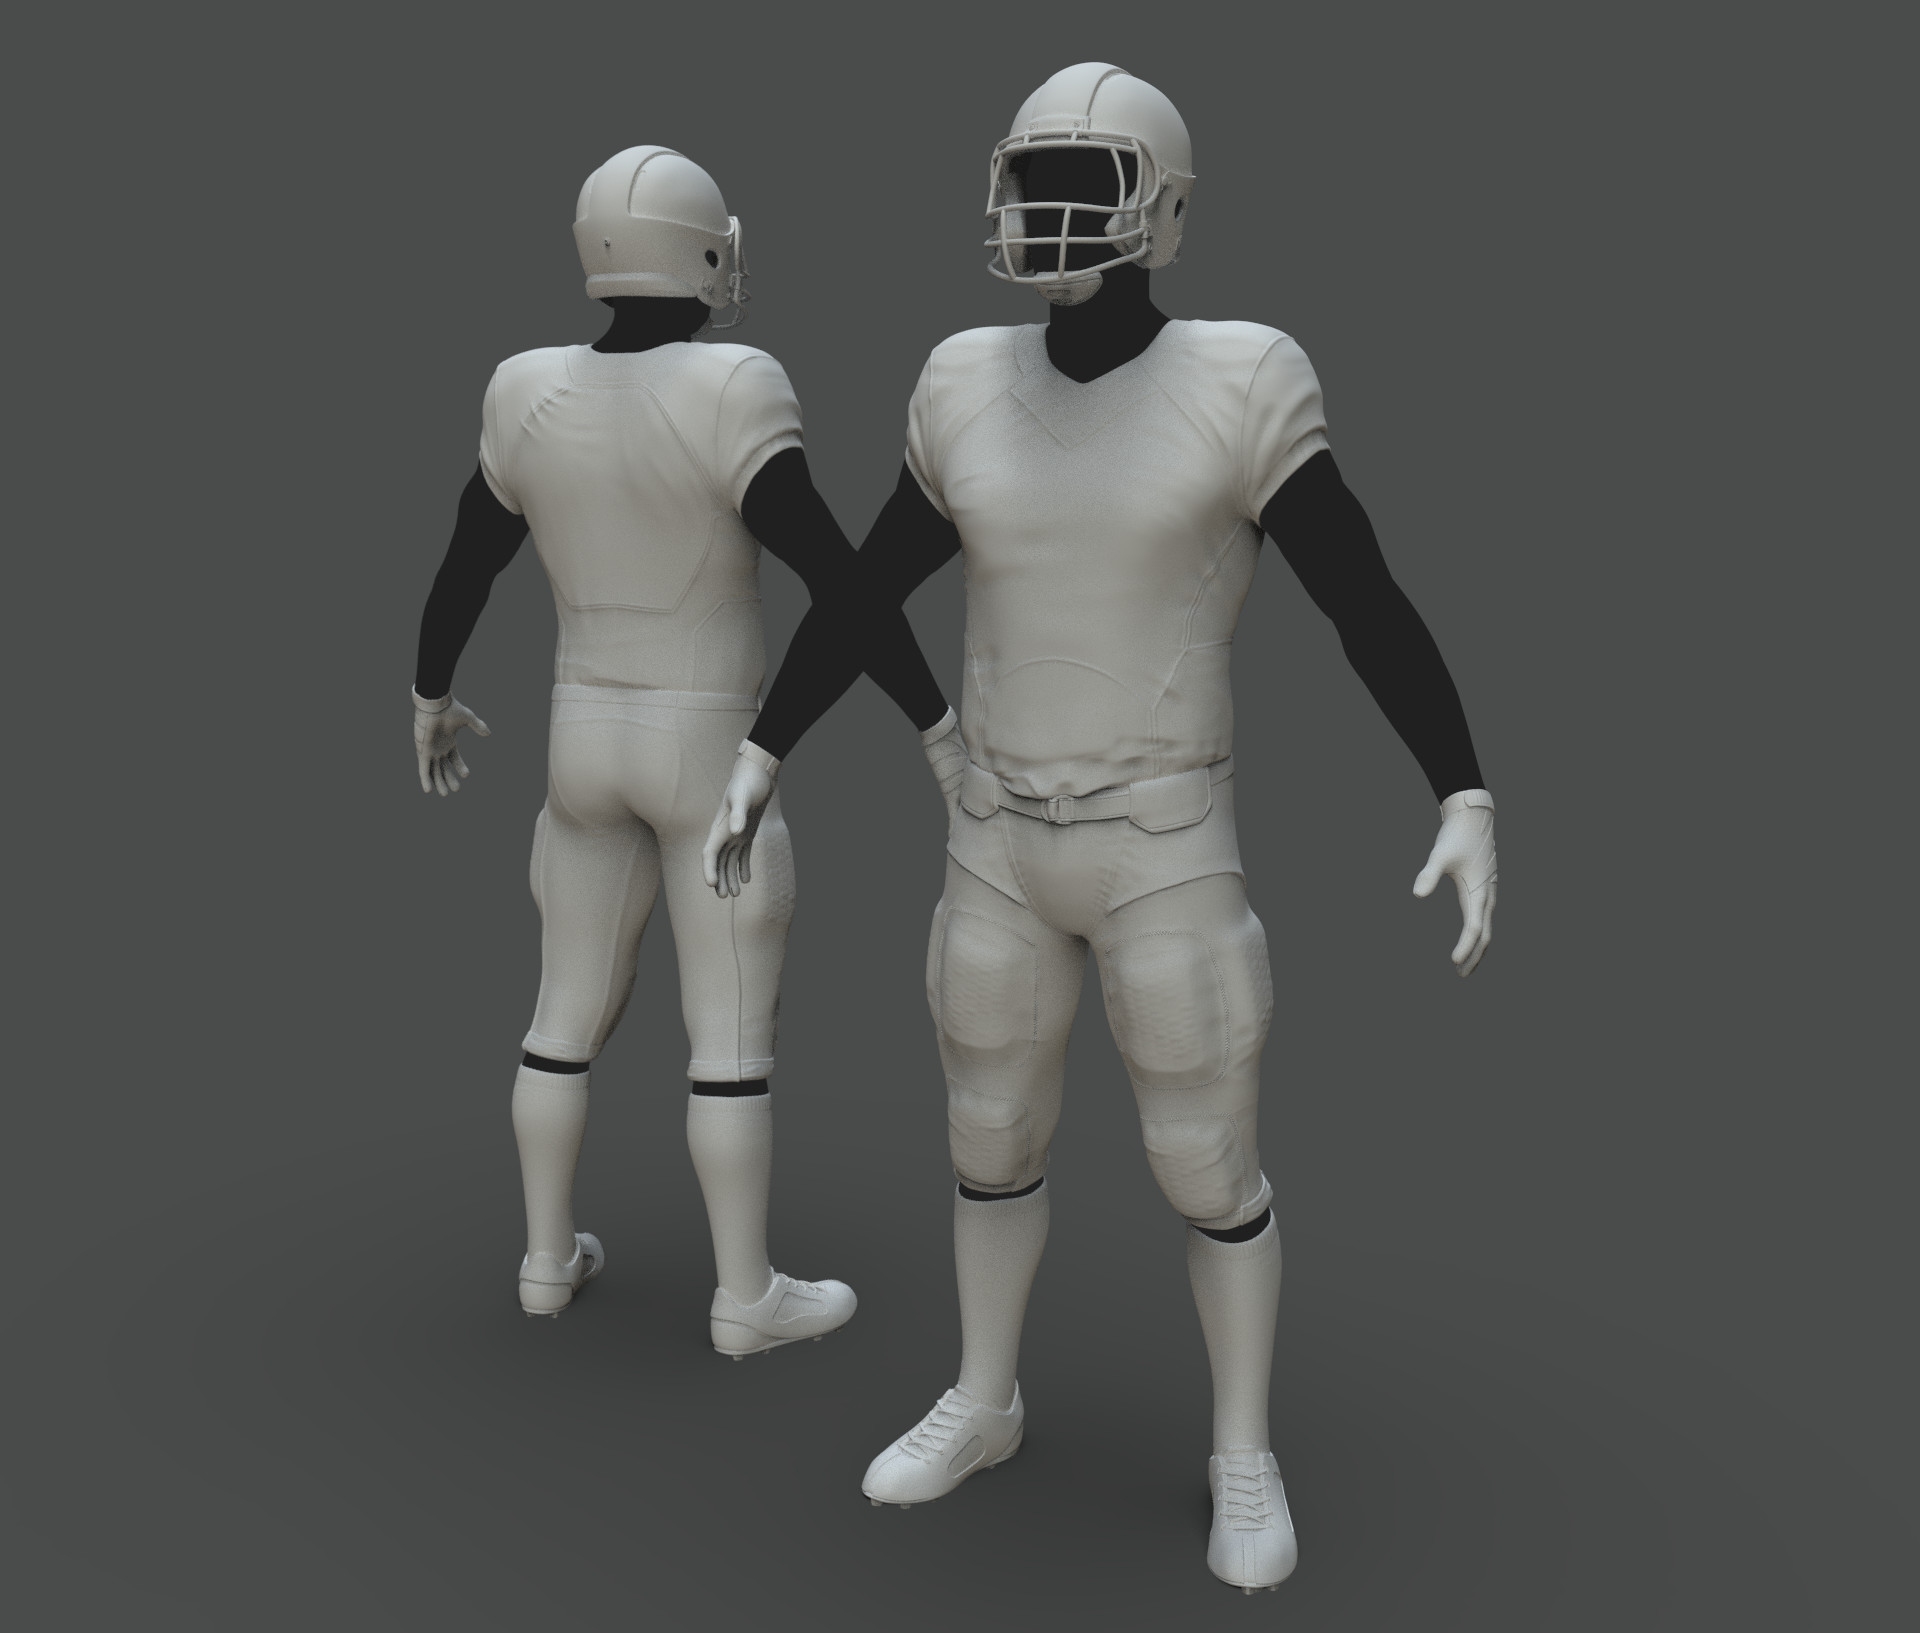 Clothing sculpt for our Pro Player characters (heads and skin texturing were done by another artist).